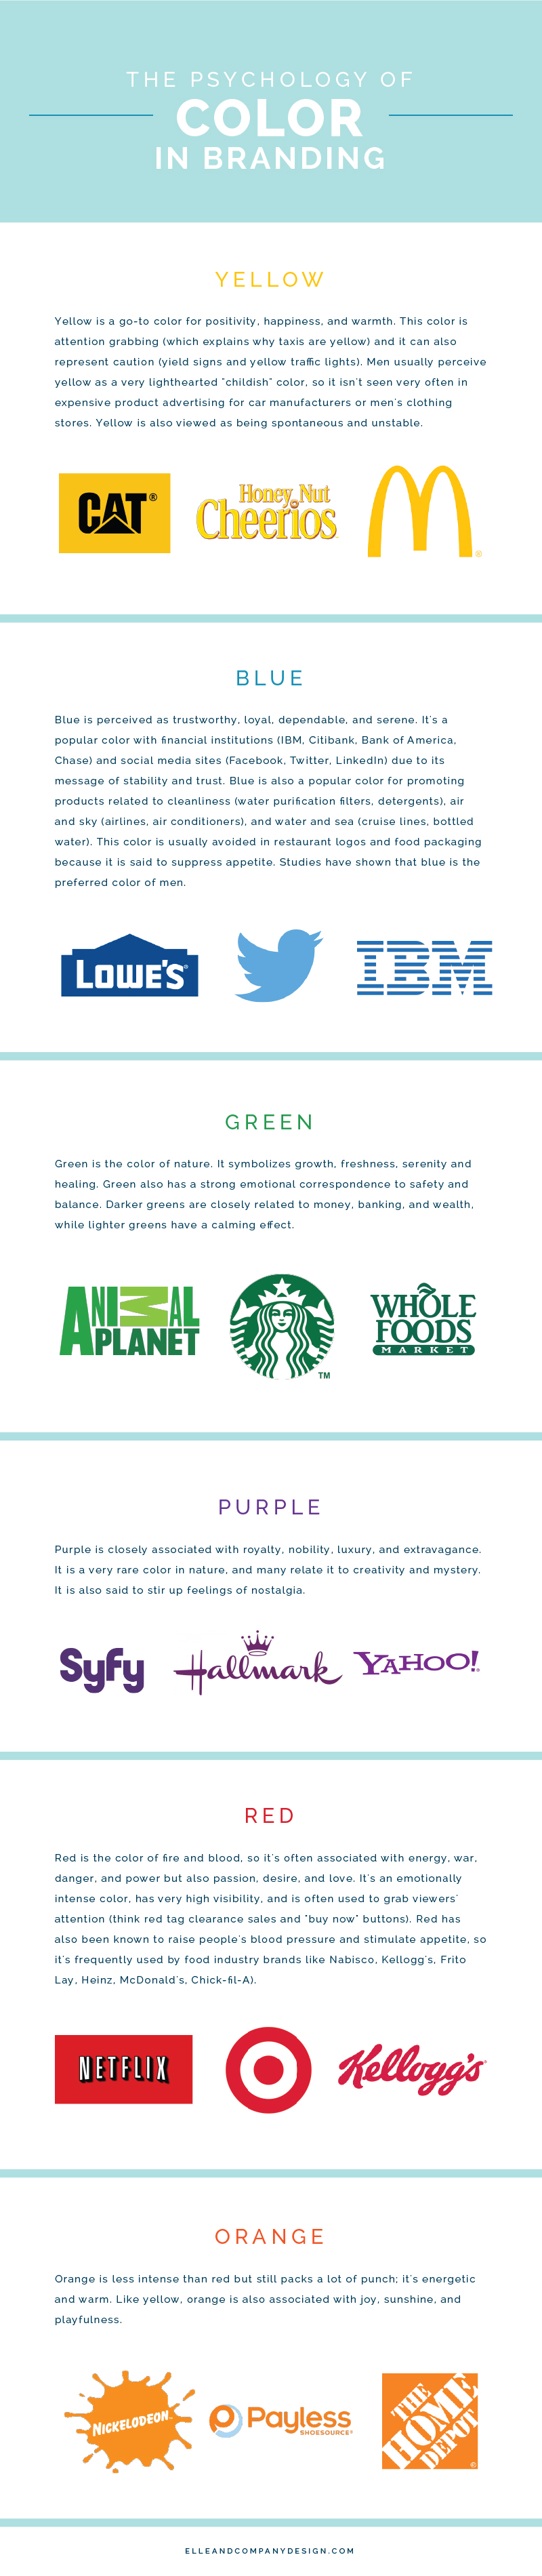 The Psychology of Color in Branding | Elle & Company